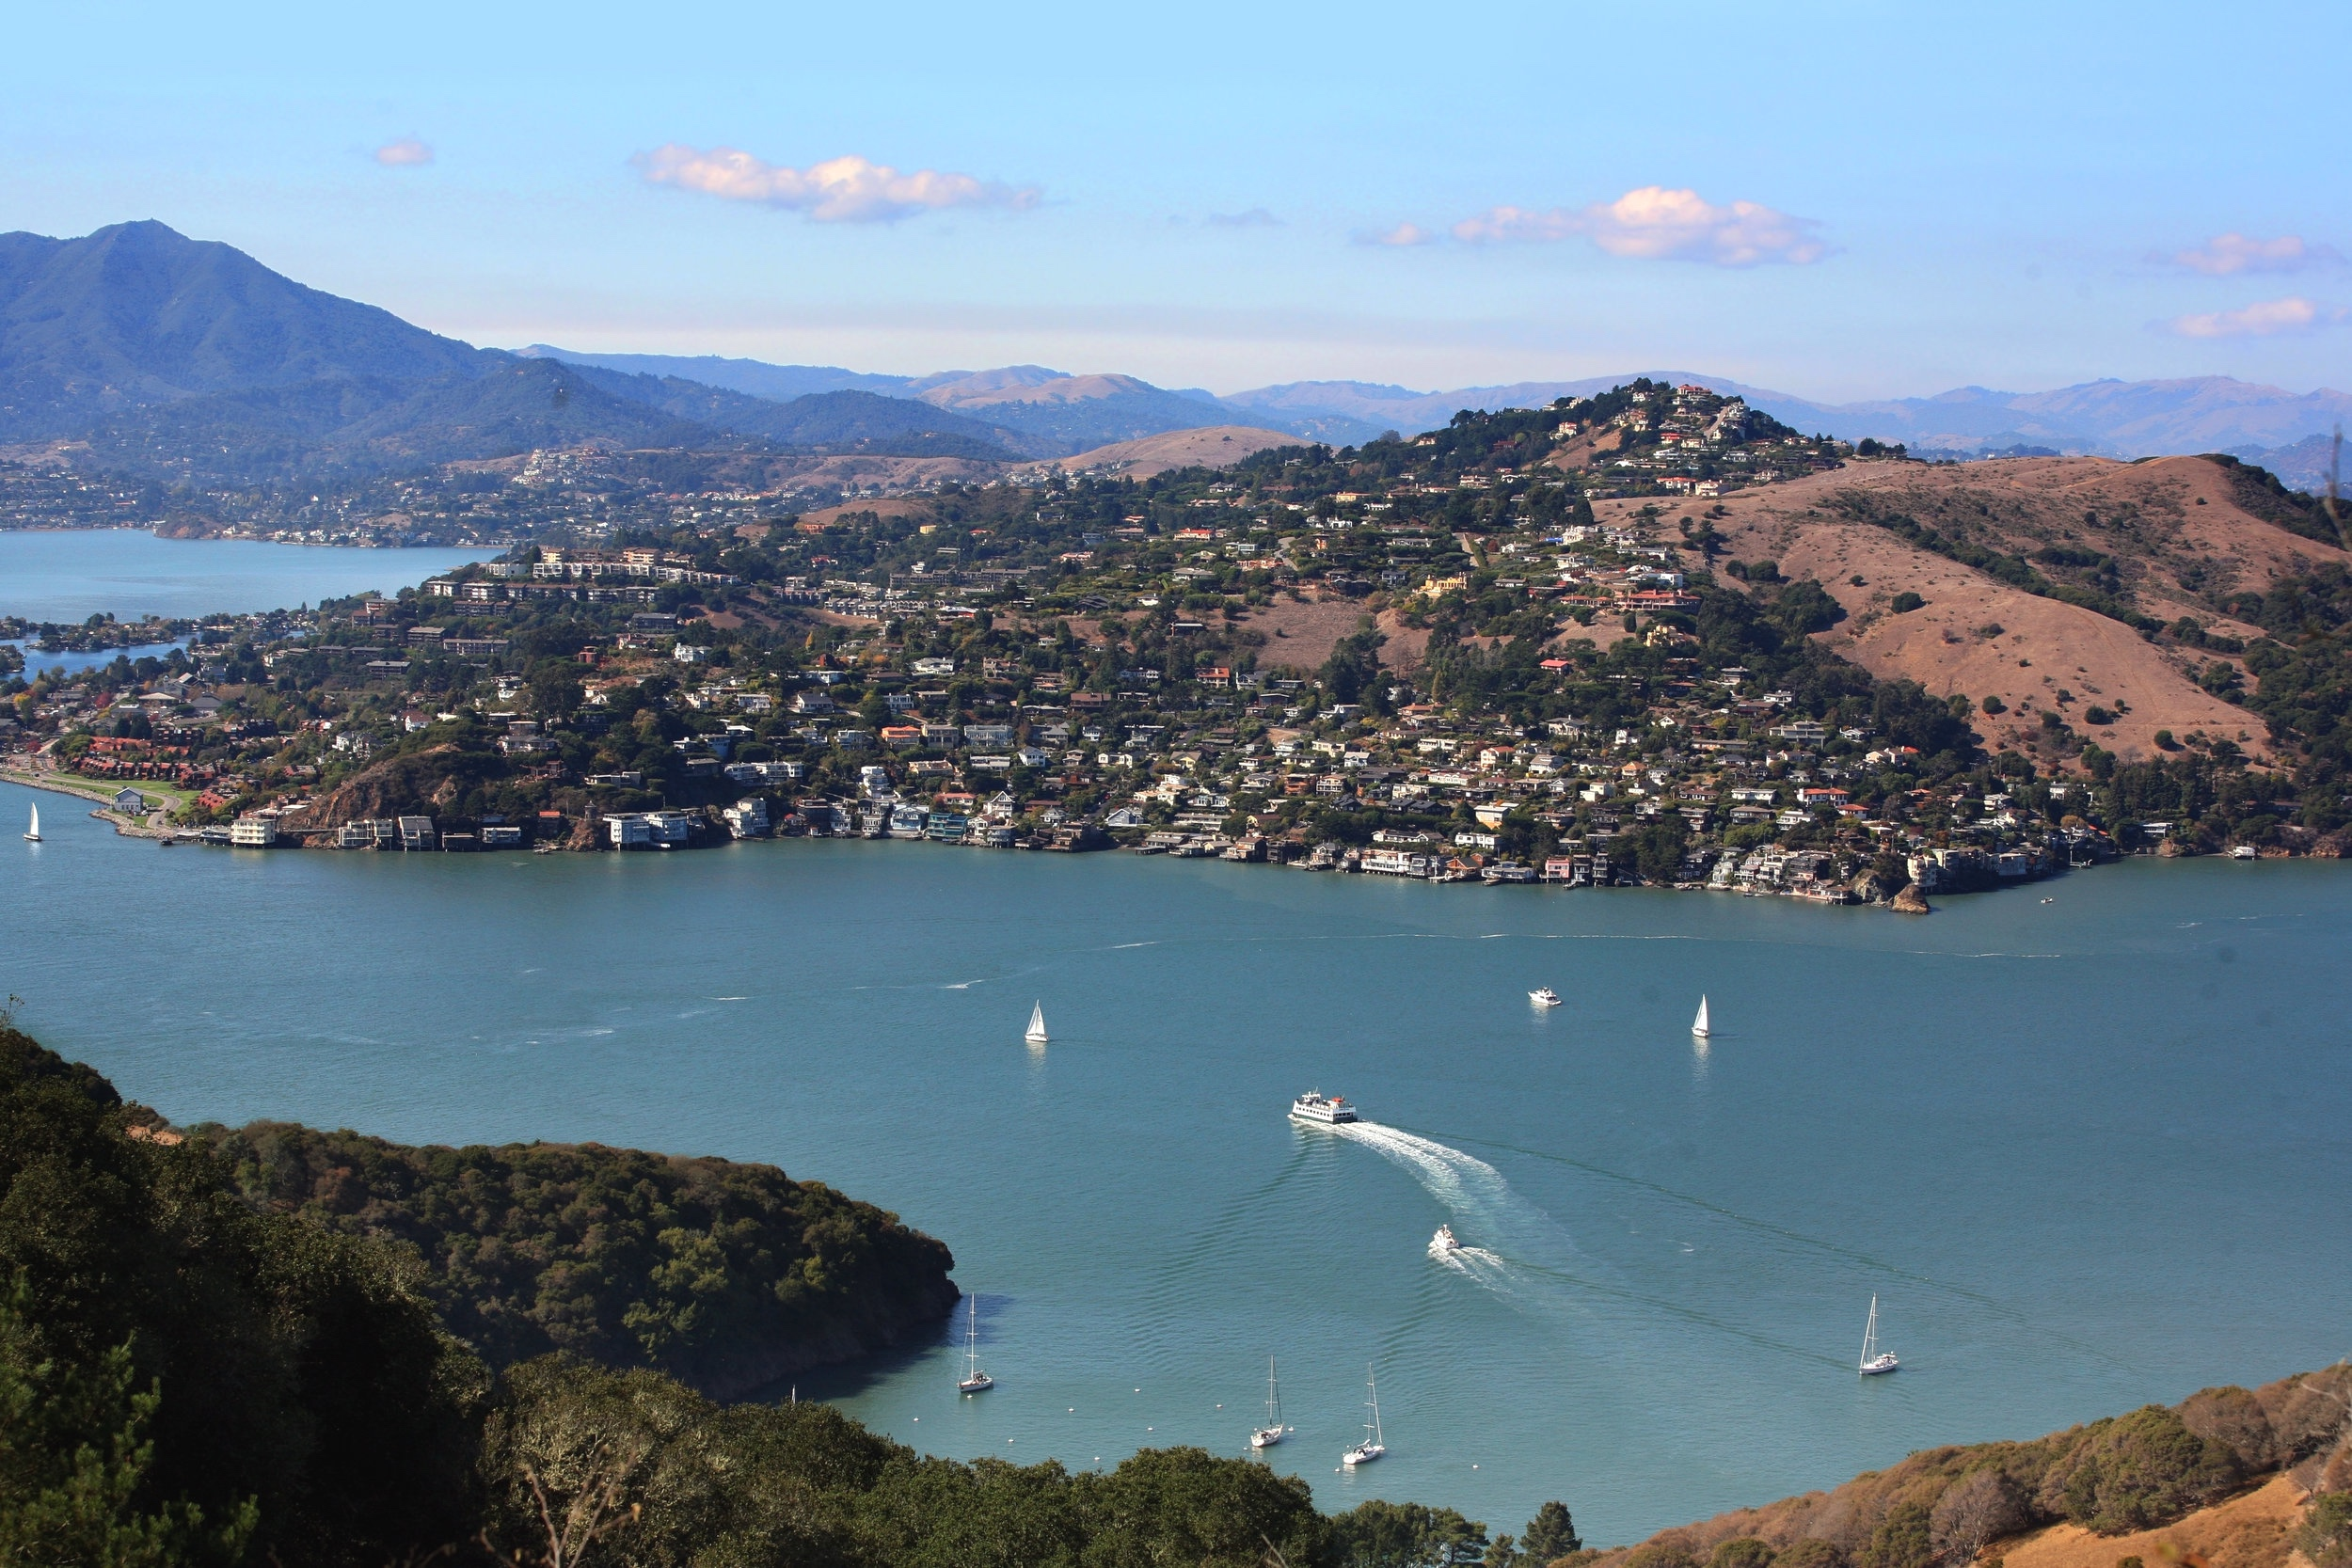 The beautiful town of Tiburon in Marin County is immersed in natural beauty, surrounded by the San Francisco Bay, and topped off by views of Mt. Tamalpais.